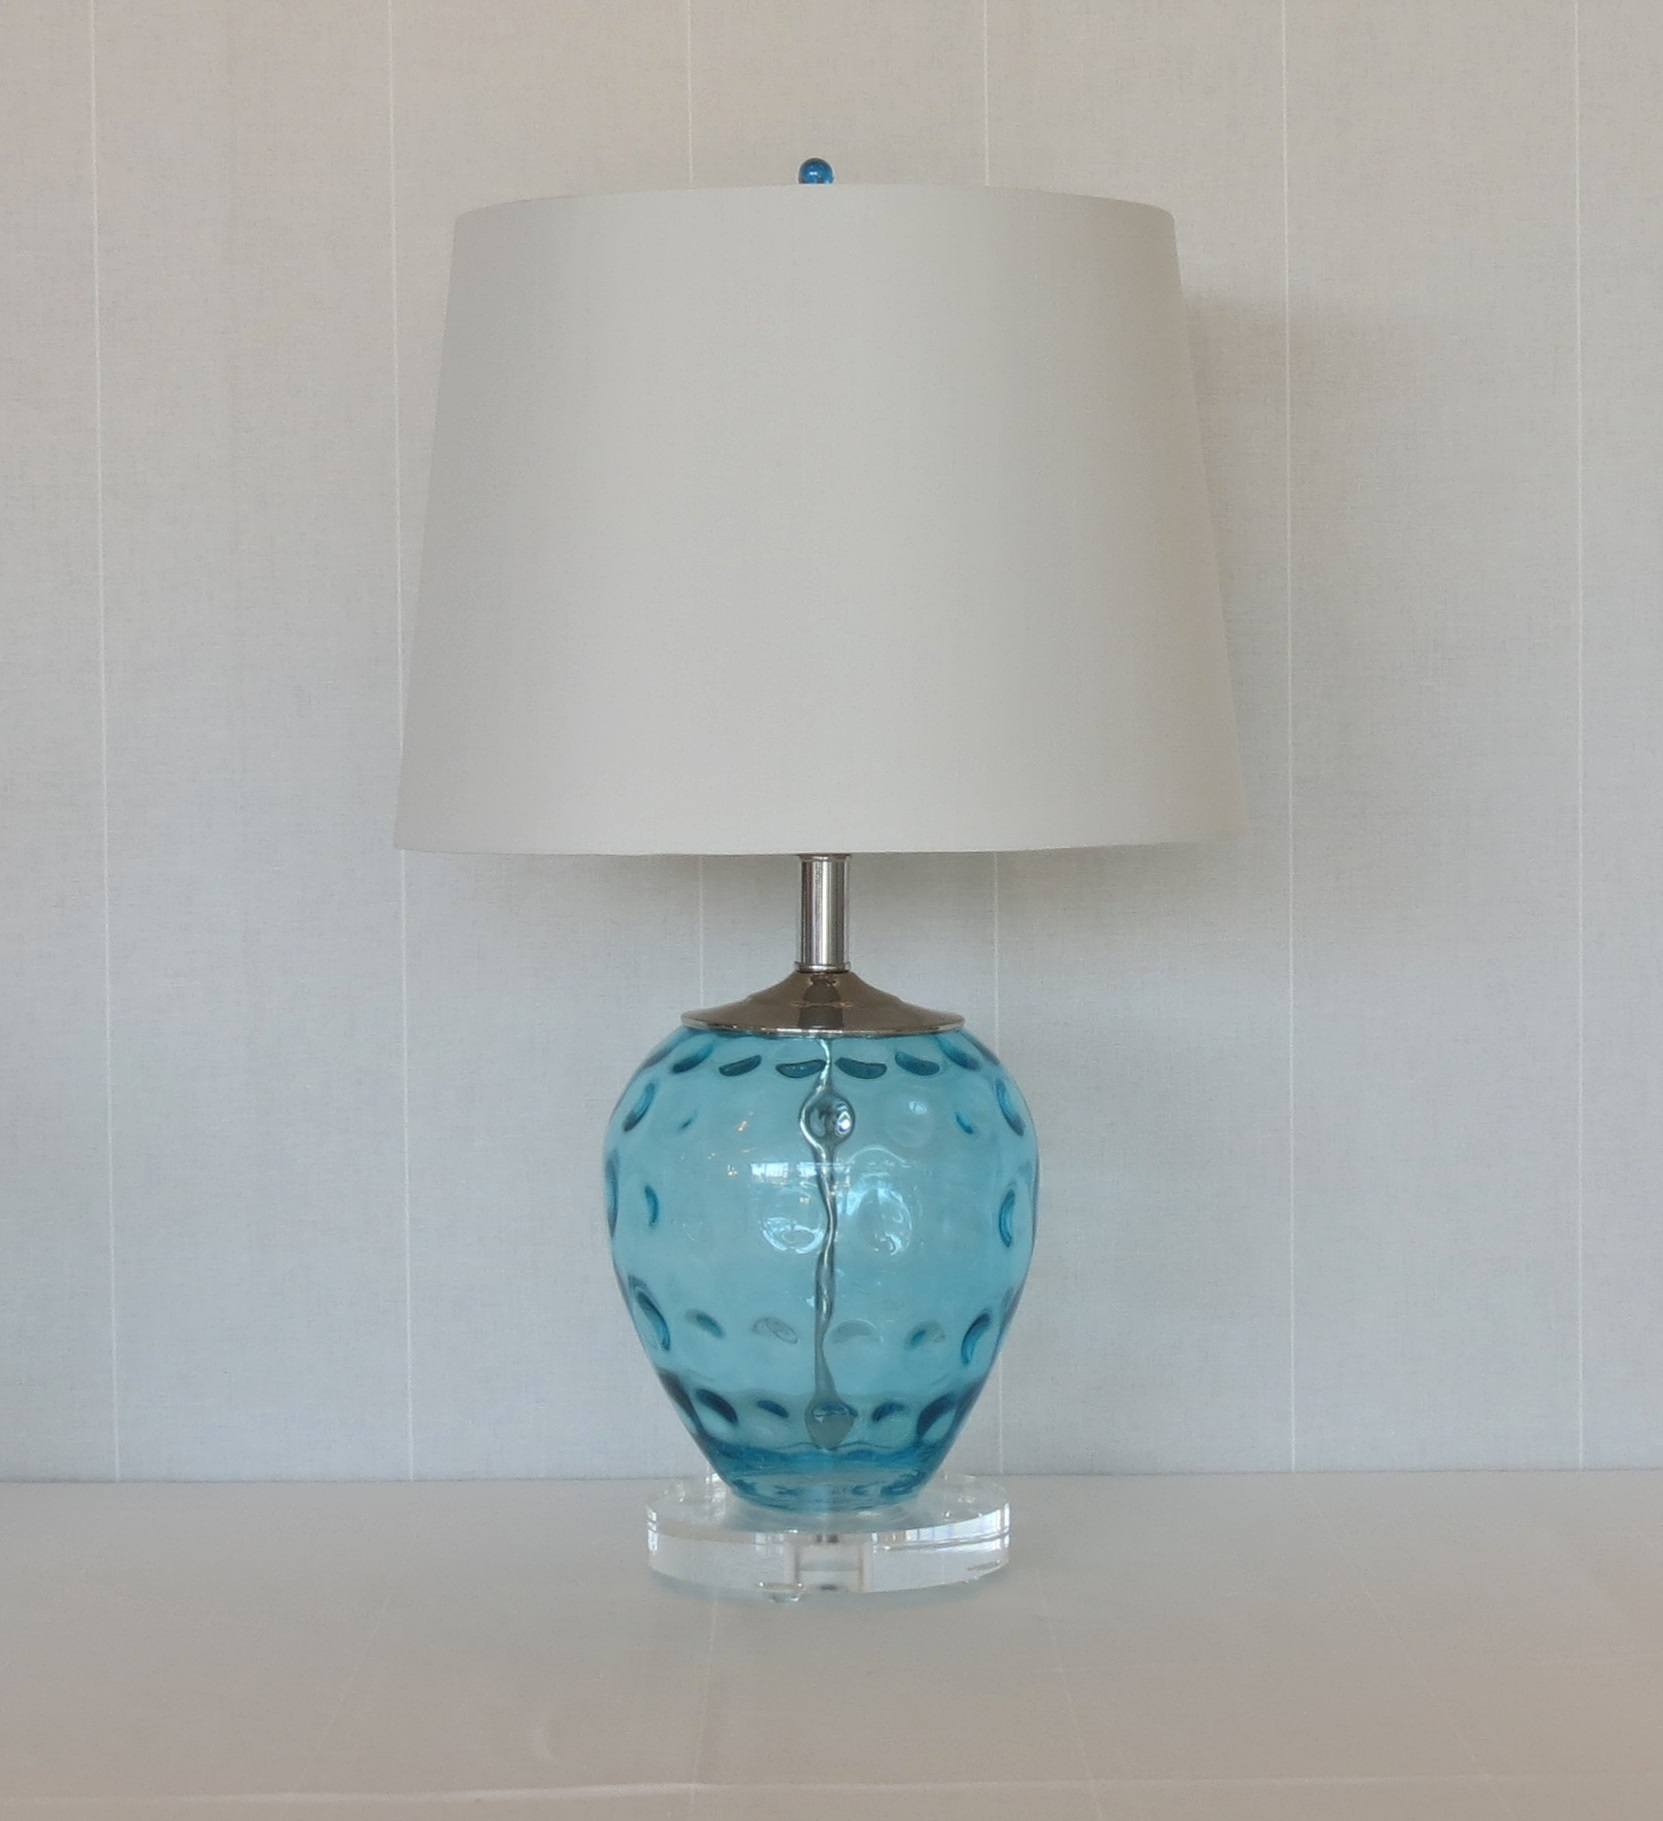 TOP Aqua lamps for your home decoration